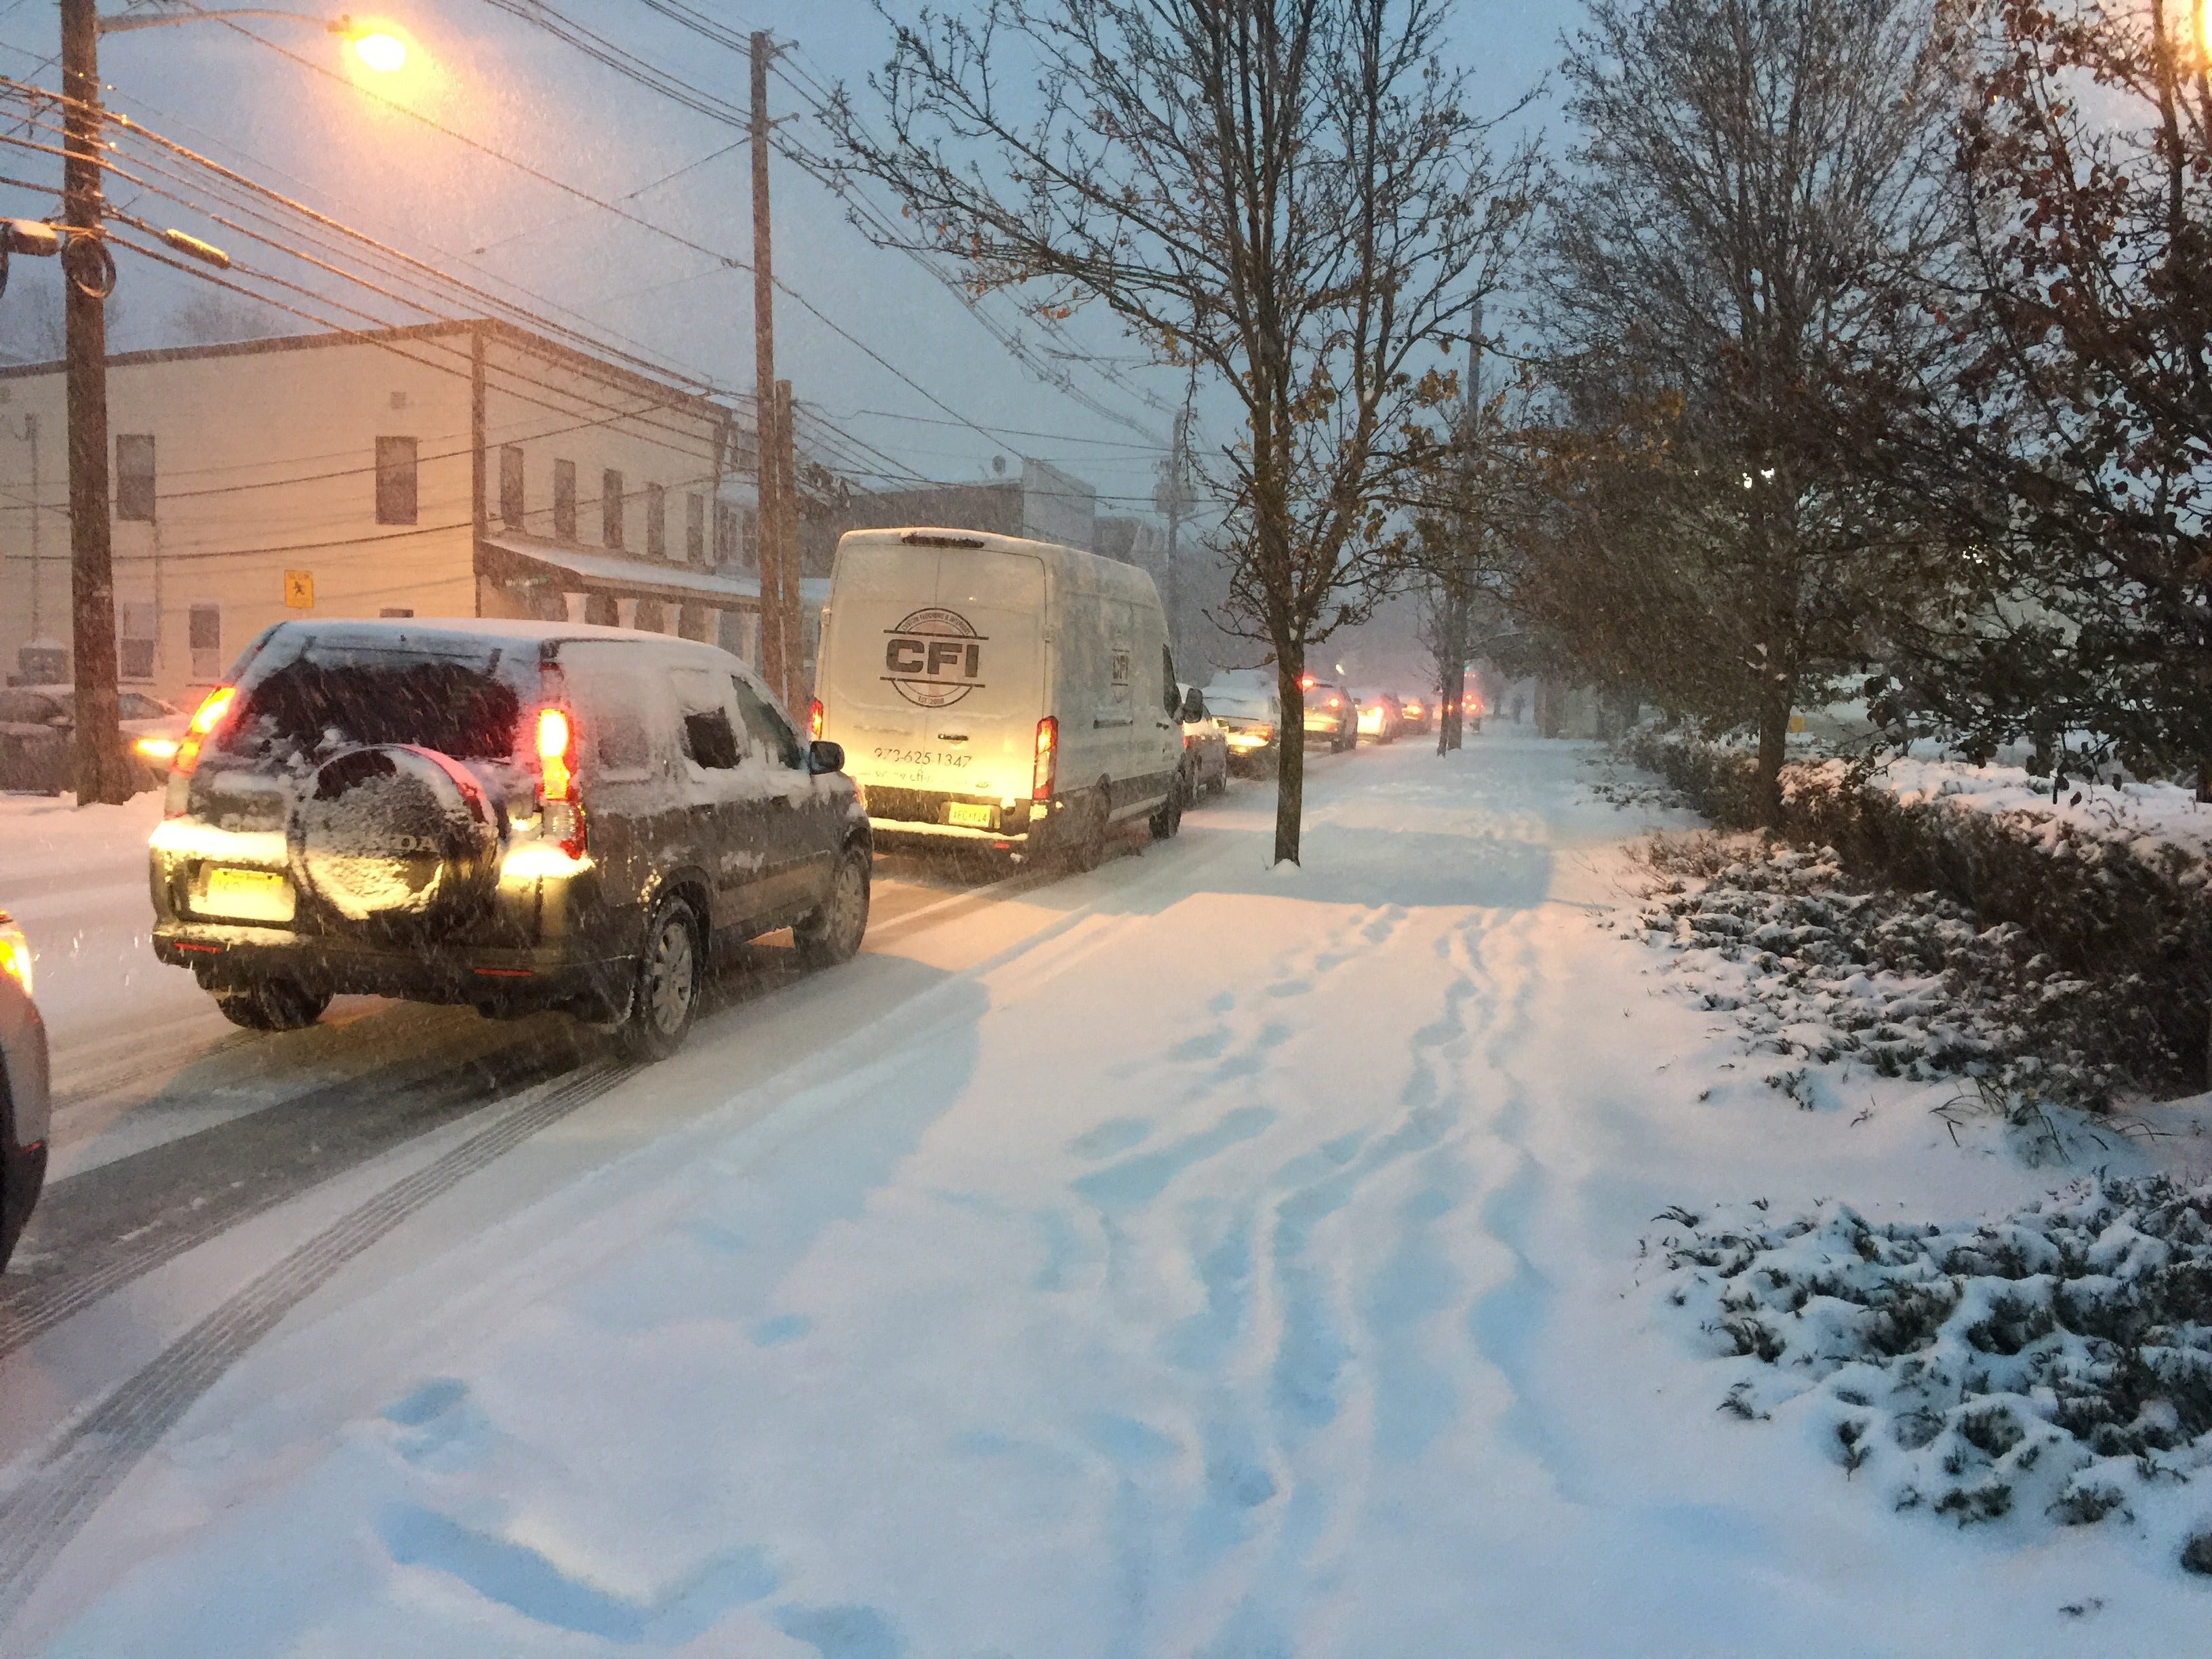 Traffic was at standstill shortly before 5 p.m. on Valley Road in Montclair on Thursday, Nov. 15, 2018.